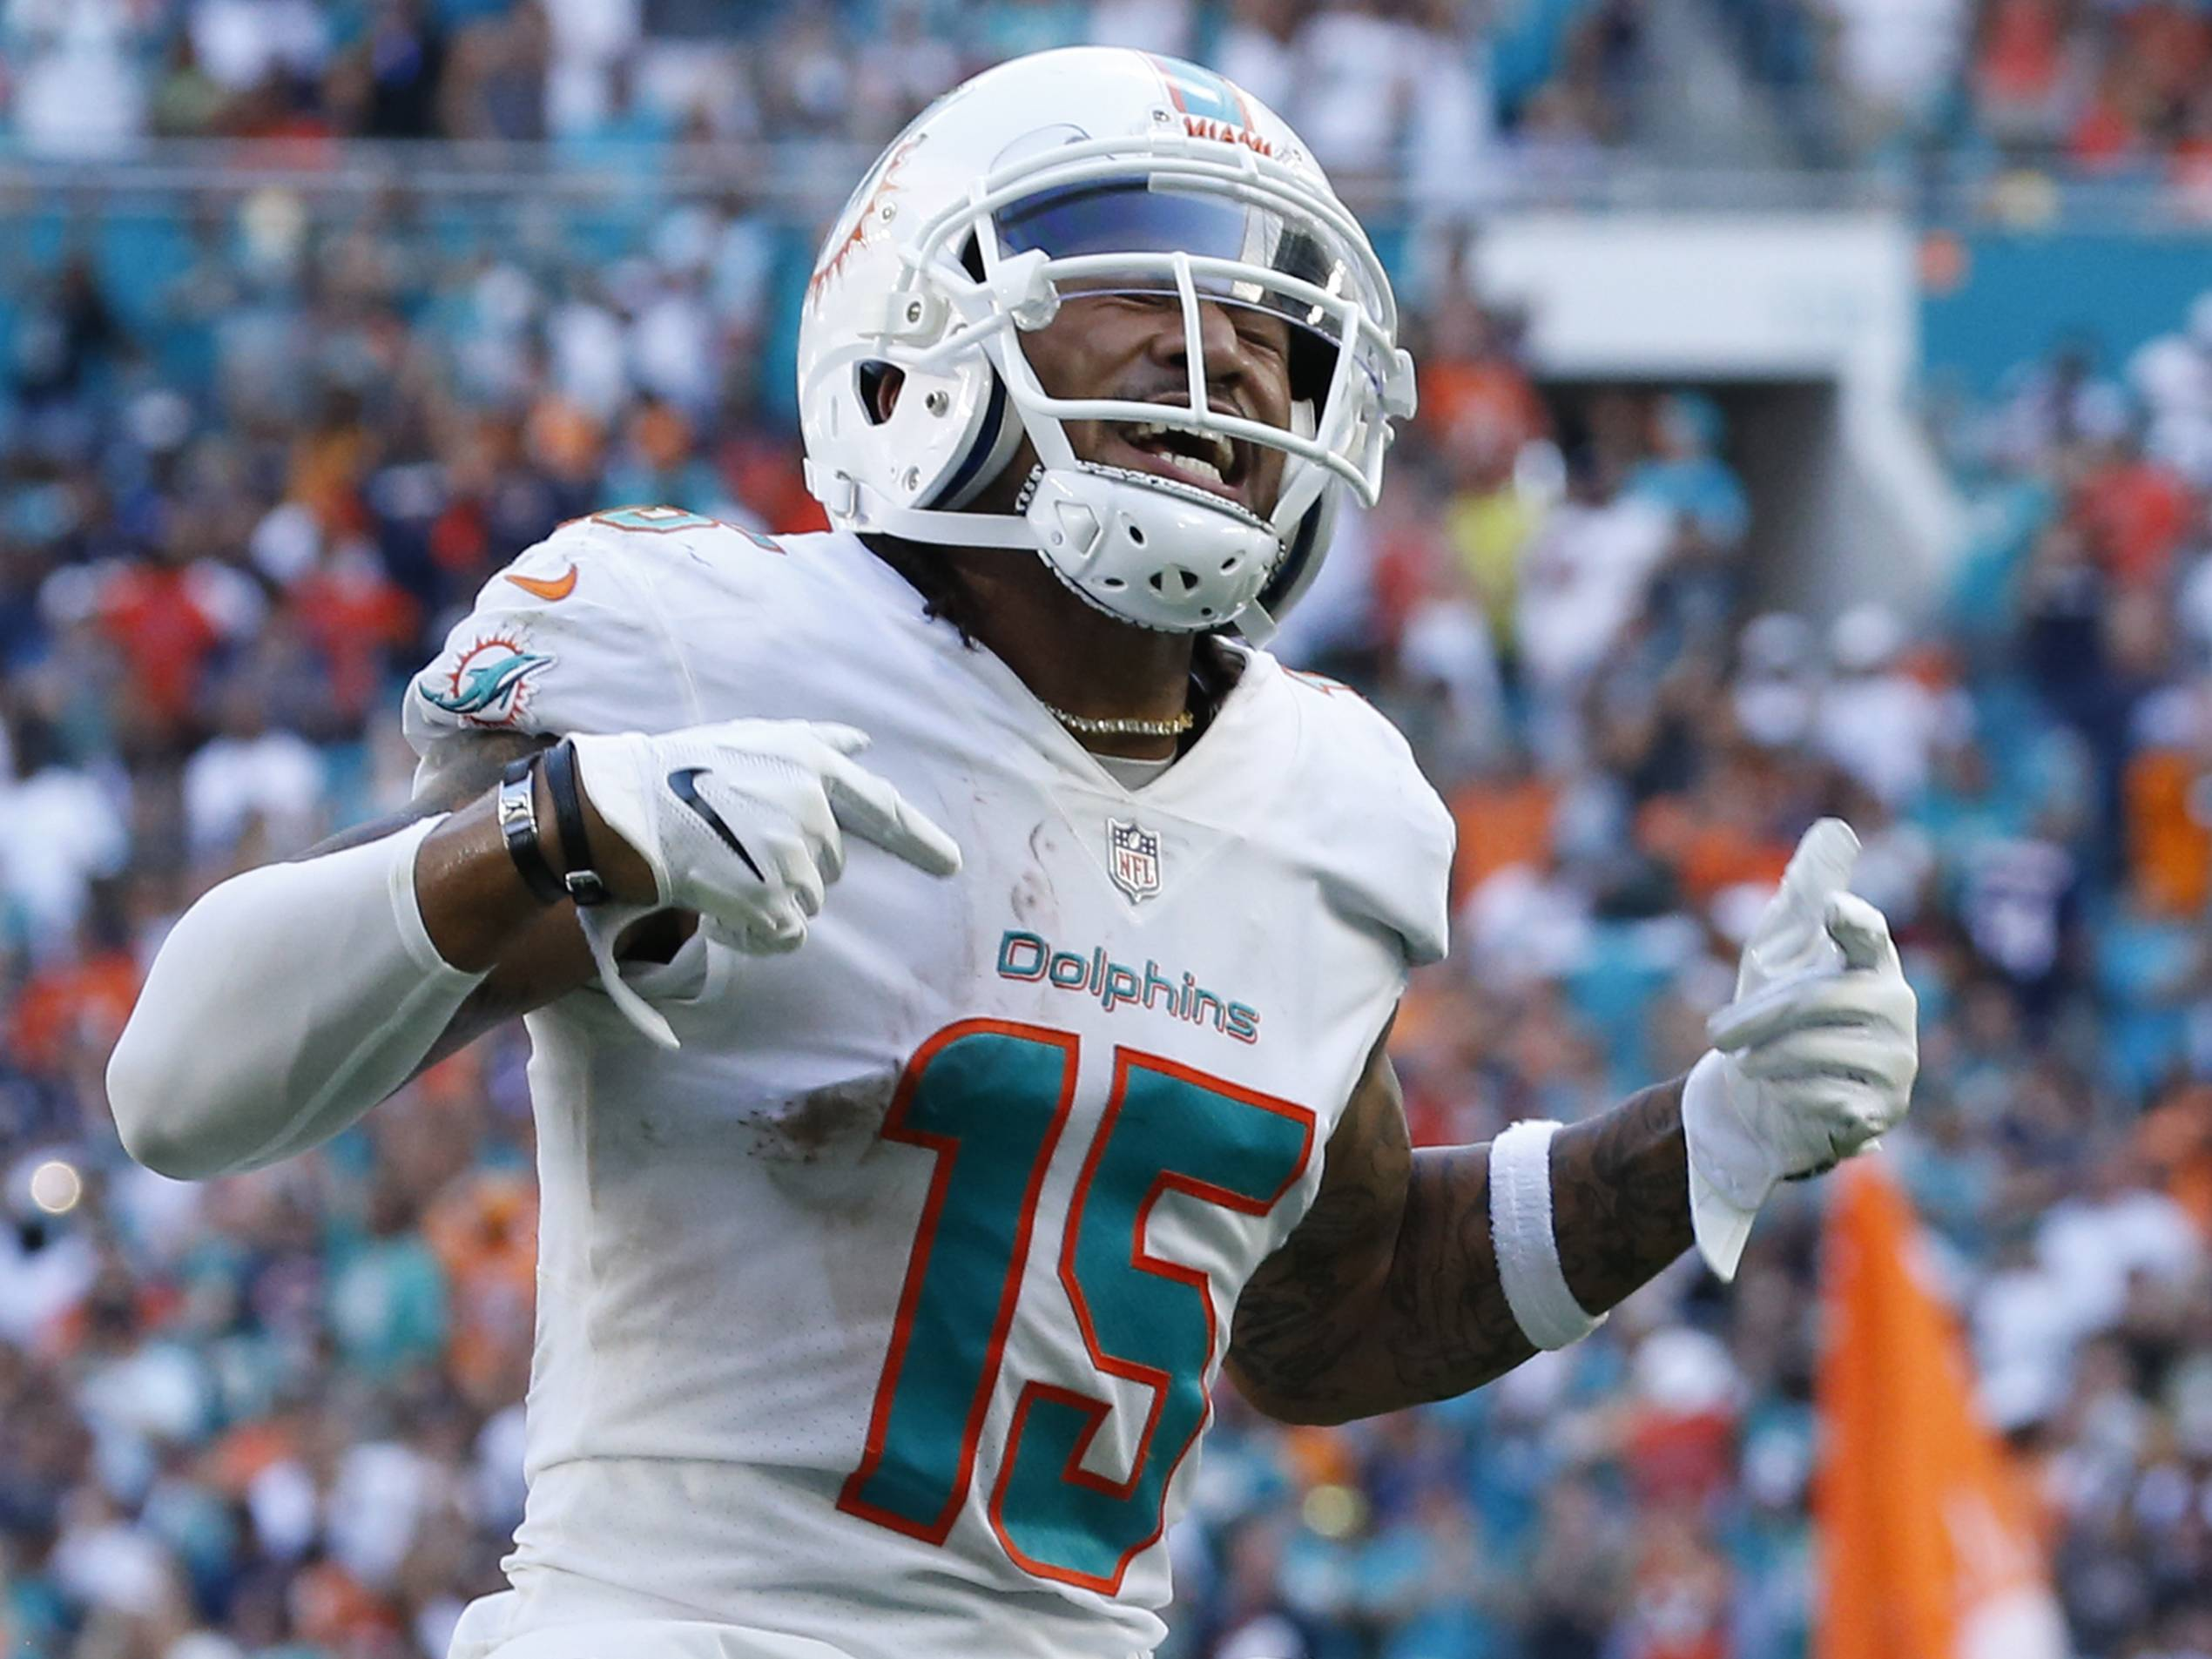 promo code fafae 2c277 Dolphins WR Albert Wilson expects to return by Week 1 - NFL.com